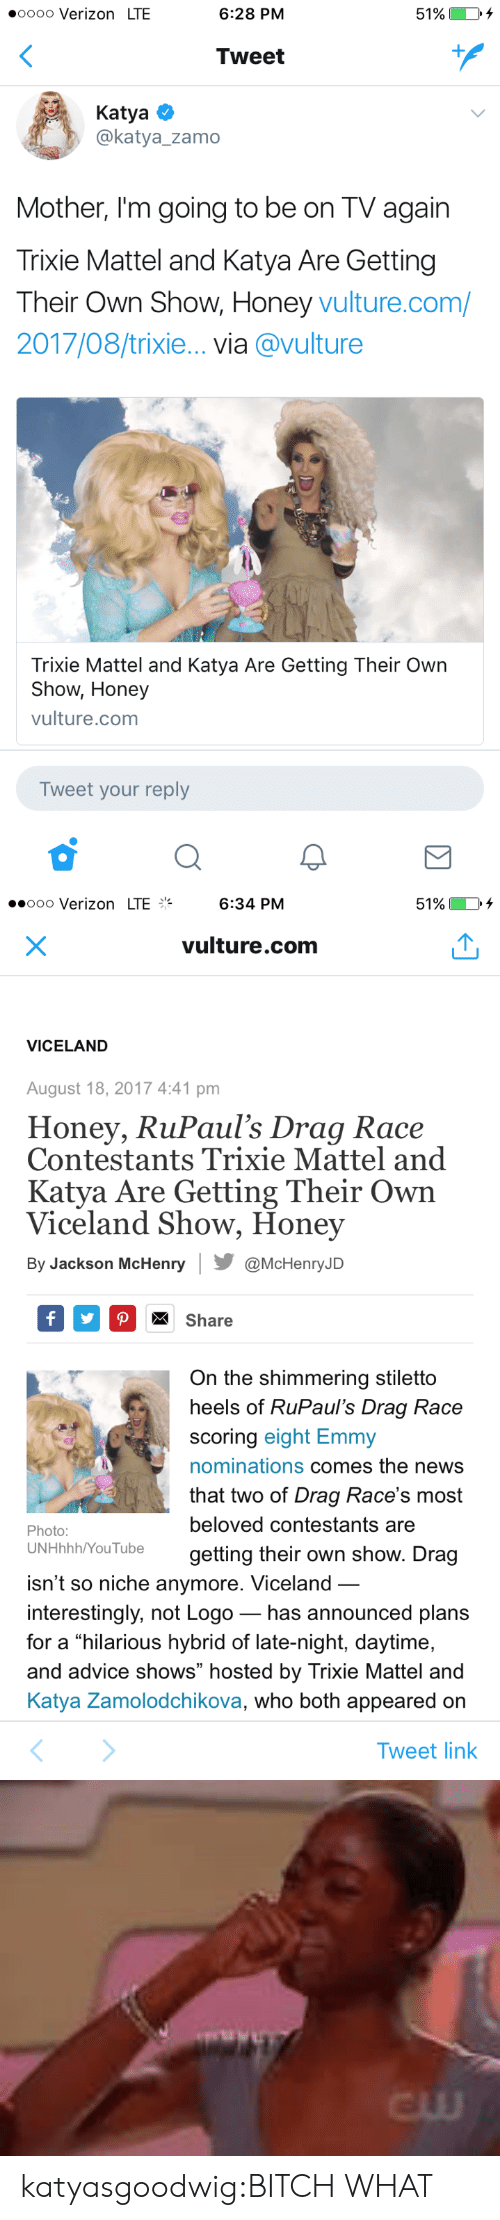 "Advice, Bitch, and News: oooo Verizon LTE  6:28 PM  51%)  Tweet  Katya  @katya_zamo  Mother, I'm going to be on TV again  Trixie Mattel and Katya Are Gettingg  Their Own Show, Honey vulture.com/  2017/08/trixie... via @vulture  Trixie Mattel and Katya Are Getting Their Own  Show, Honey  vulture.com  Tweet your reply   ..ooo Verizon LTE%  6:34 PM  51%  vulture.com  VICELAND  August 18, 2017 4:41 pm  Honey, RuPaul's Drag Race  Contestants Trixie Mattel and  Katya Are Getting Their Own  Viceland Show, Honey  By Jackson McHenry@McHenryJD  Share  On the shimmering stiletto  heels of RuPaul's Draq Race  scoring eight Emmy  nominations comes the news  that two of Drag Race's most  beloved contestants are  getting their own show. Drag  Photo:  UNHhhh/YouTube  isn't so niche anymore. Viceland  interestingly, not Logo_ has announced plans  for a hilarious hybrid of late-night, daytime,  and advice shows"" hosted by Trixie Mattel and  Katya Zamolodchikova, who both appeared on  Tweet link   cw katyasgoodwig:BITCH WHAT"